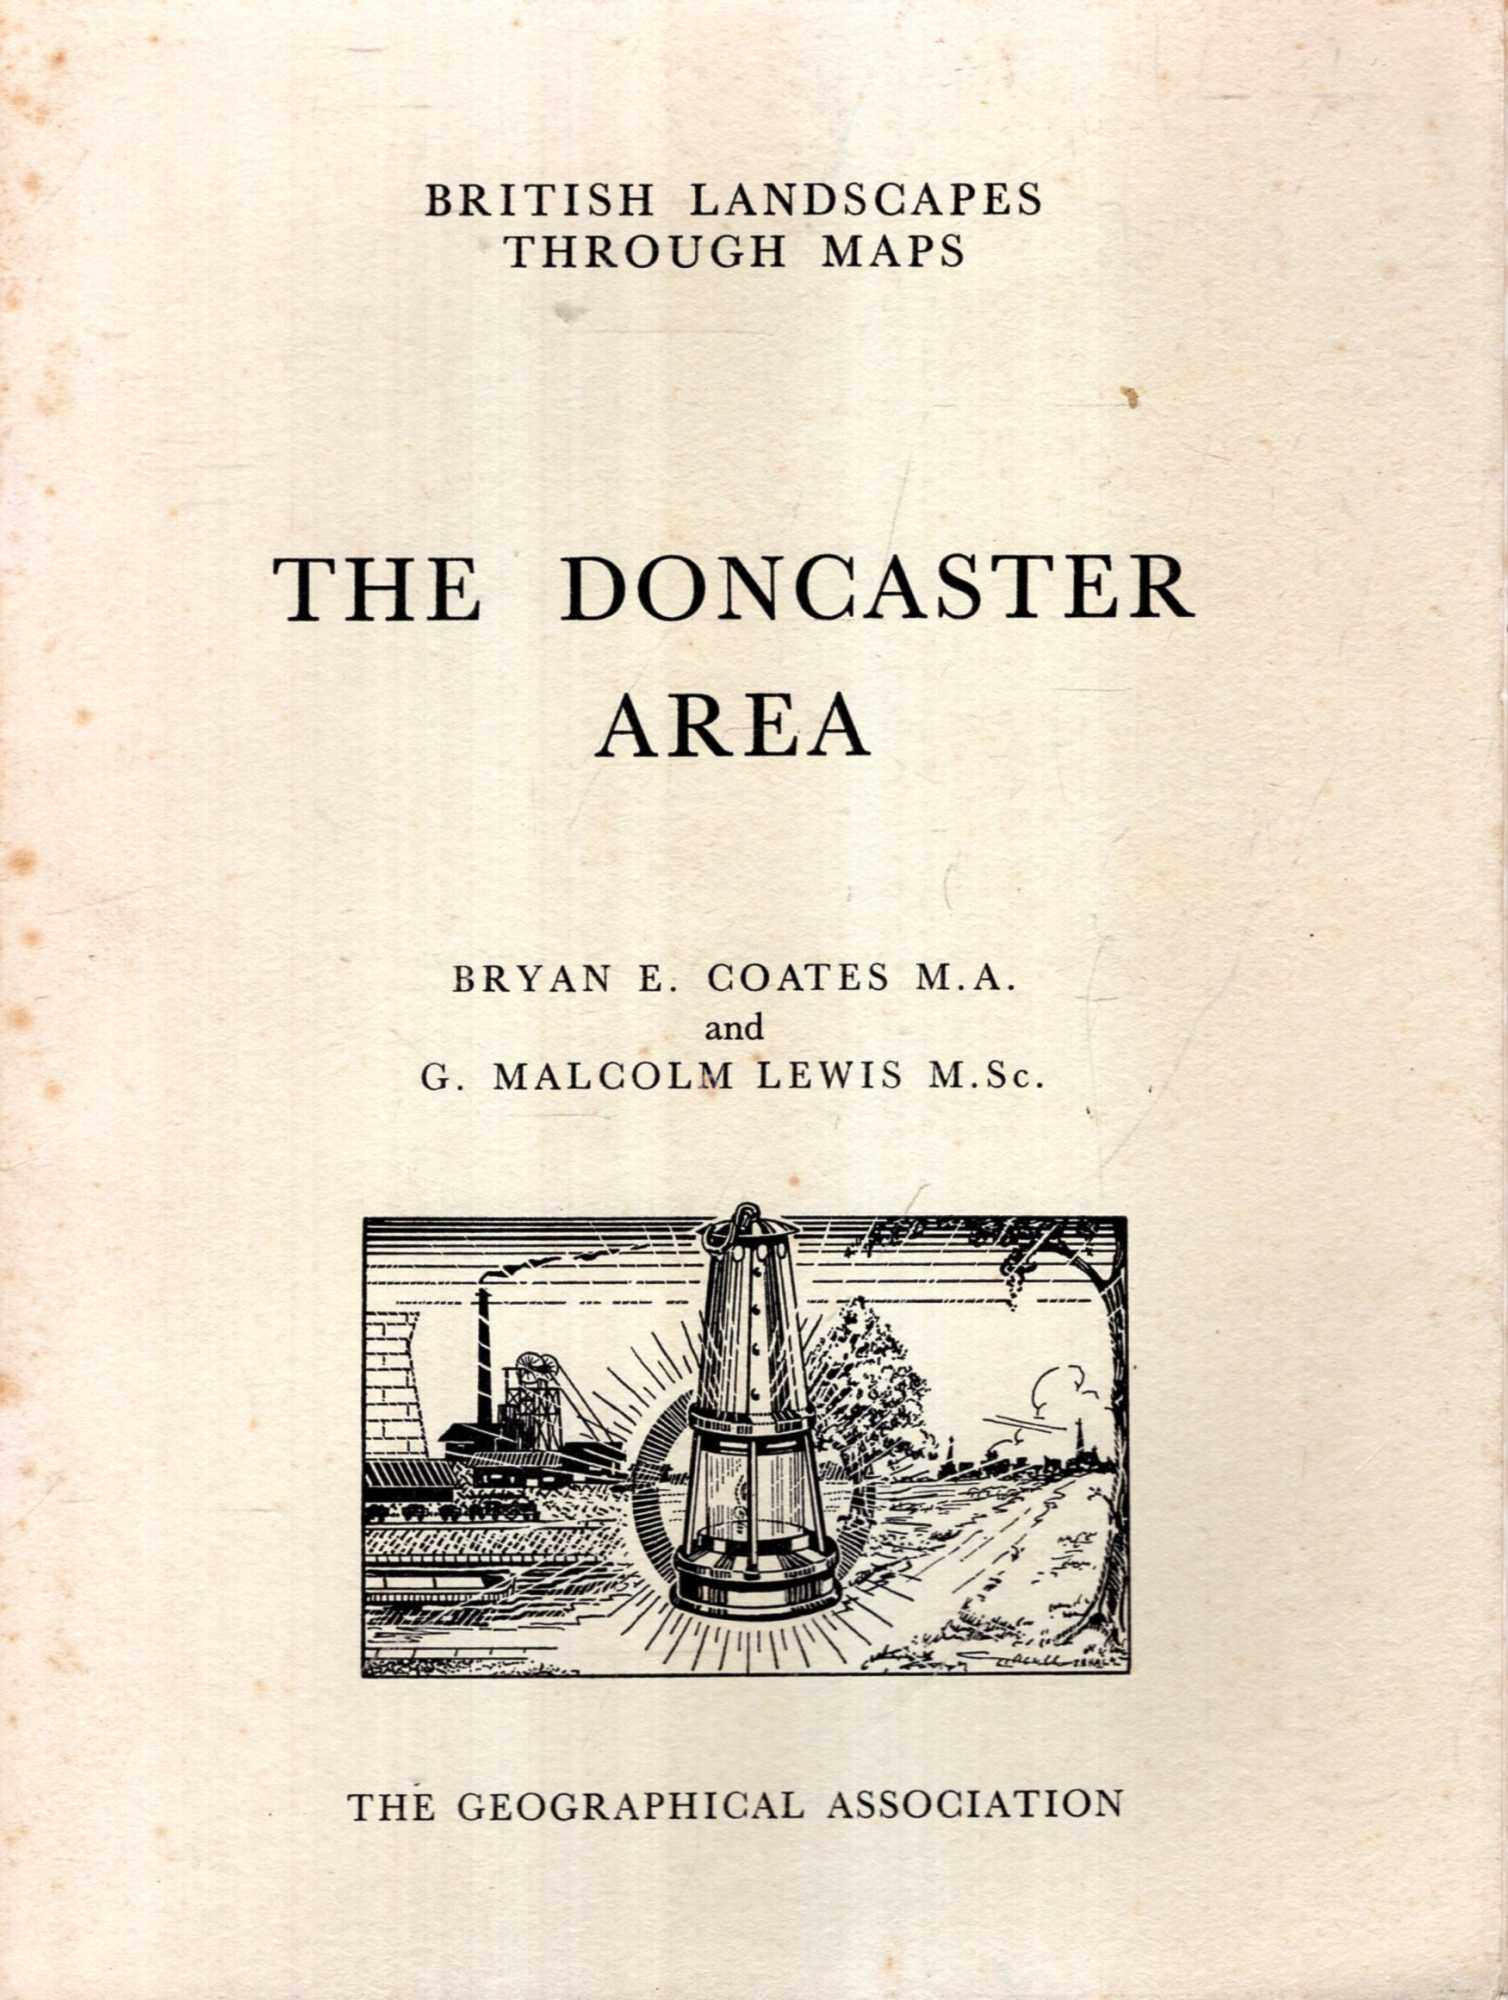 Image for British Landscapes Through Maps 8 : The Doncaster Area, a description of the O.S. One-inch Sheet 103 : Doncaster